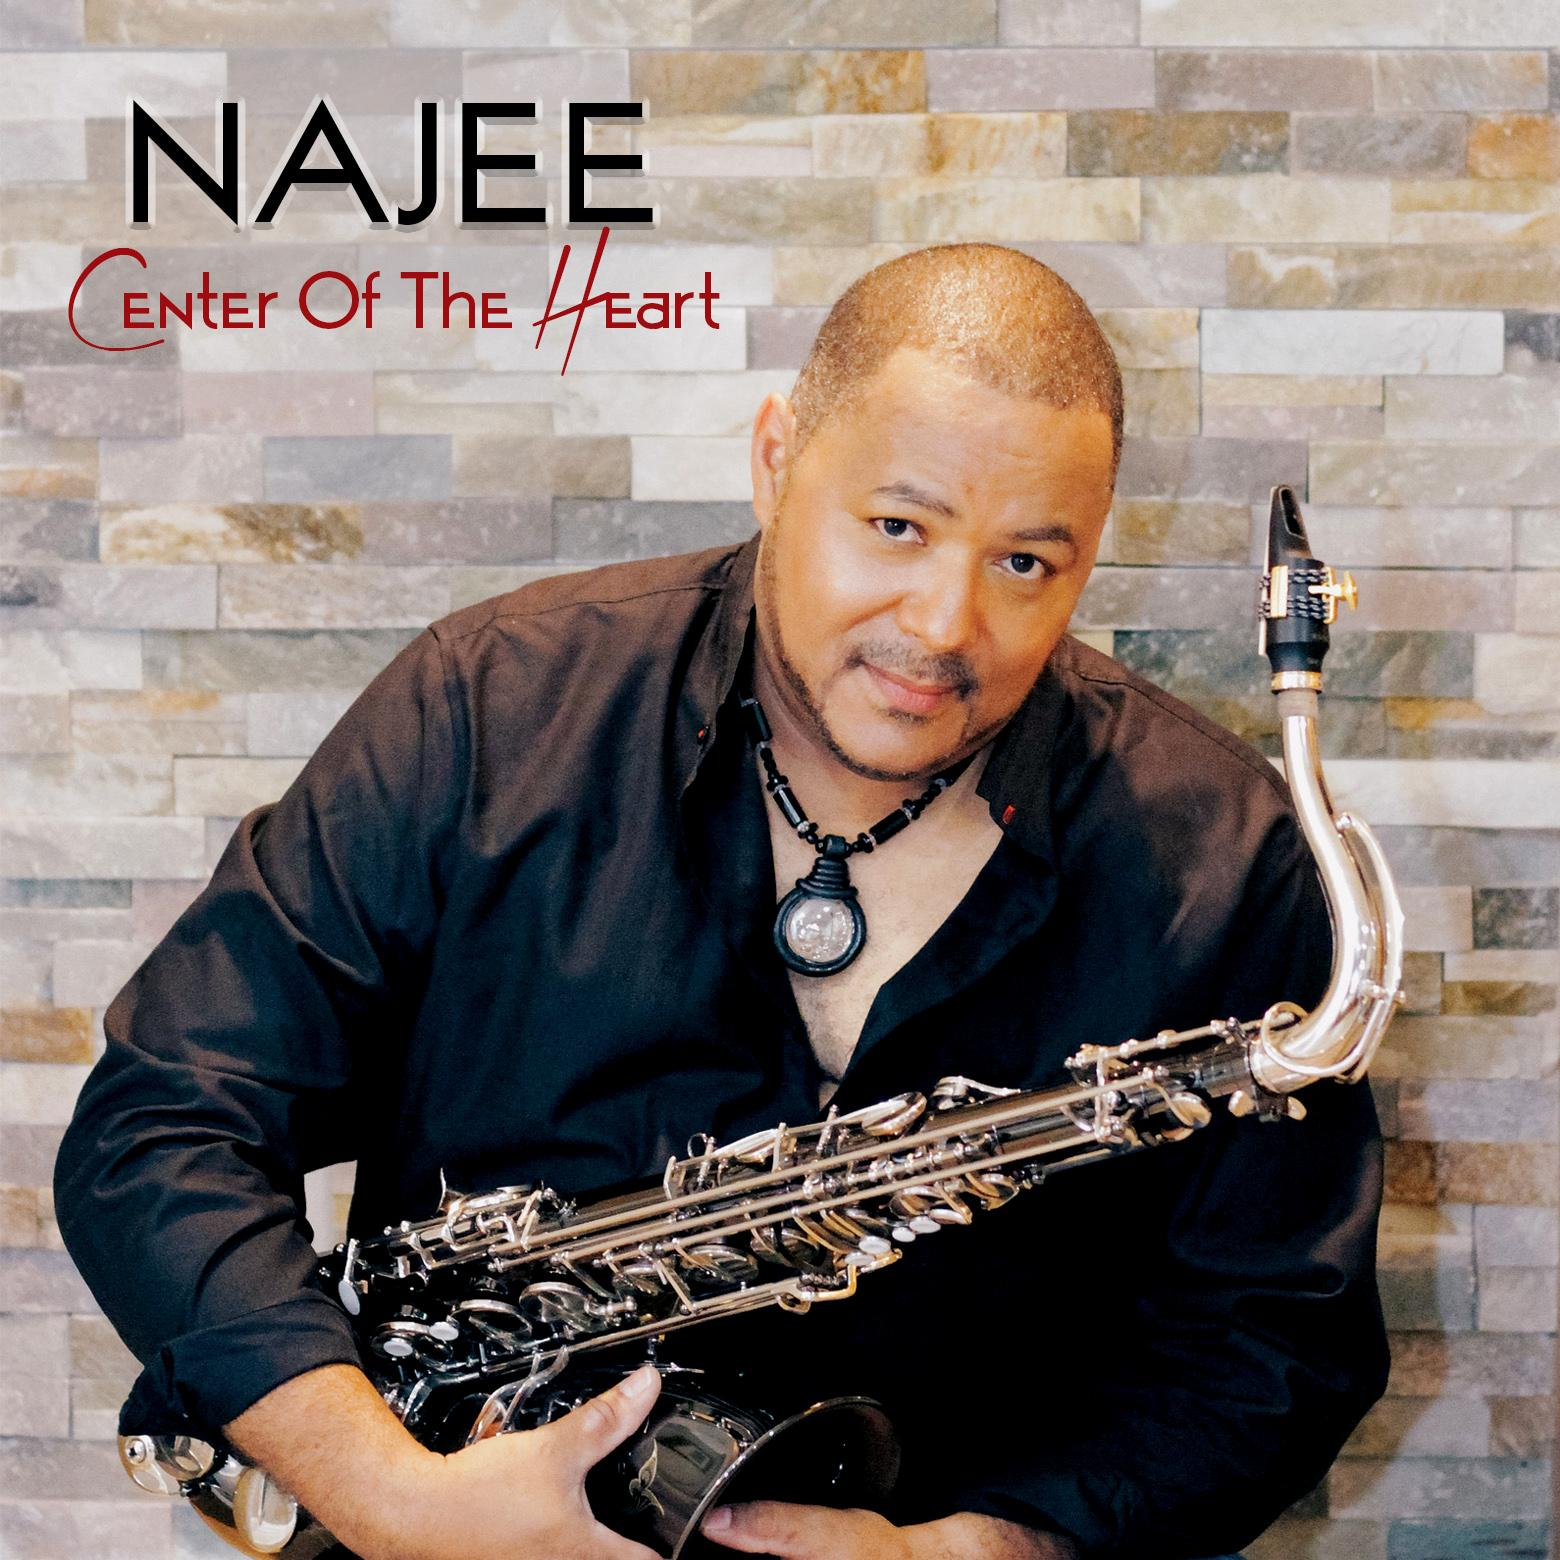 Review - 'Center of the Heart' by Najee